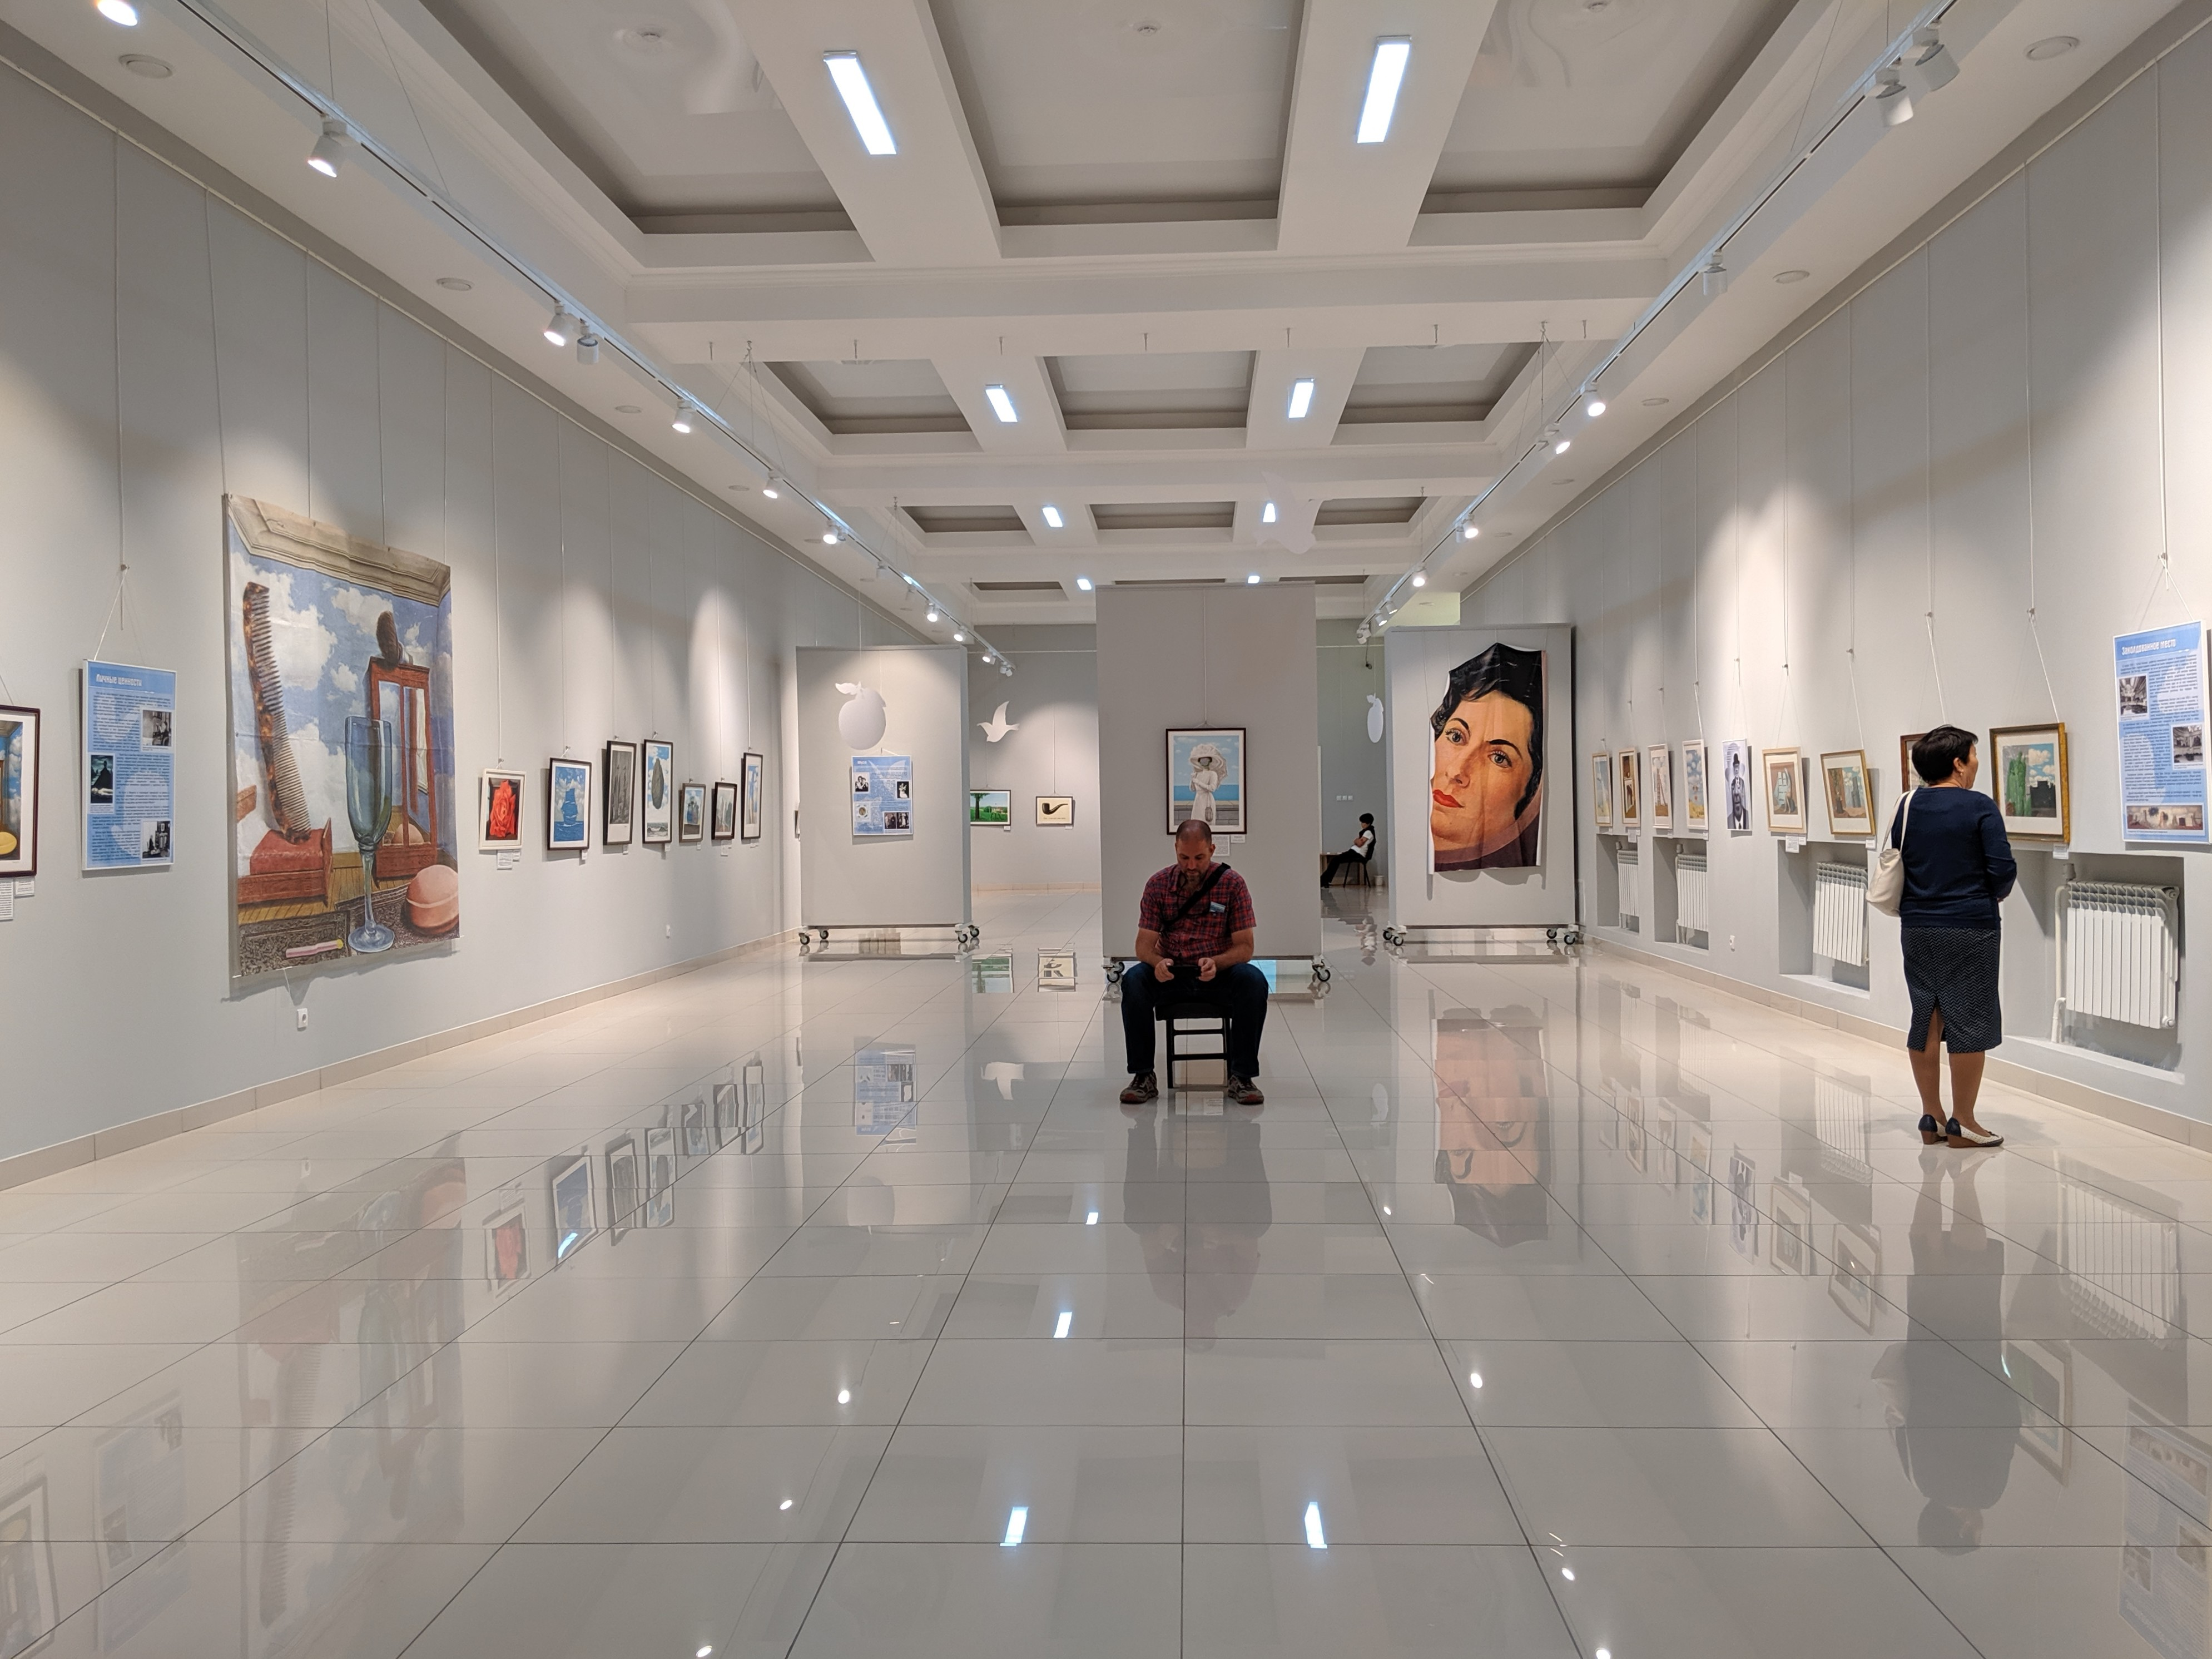 René Magritte exhibit at art museum in Ulan-Ude